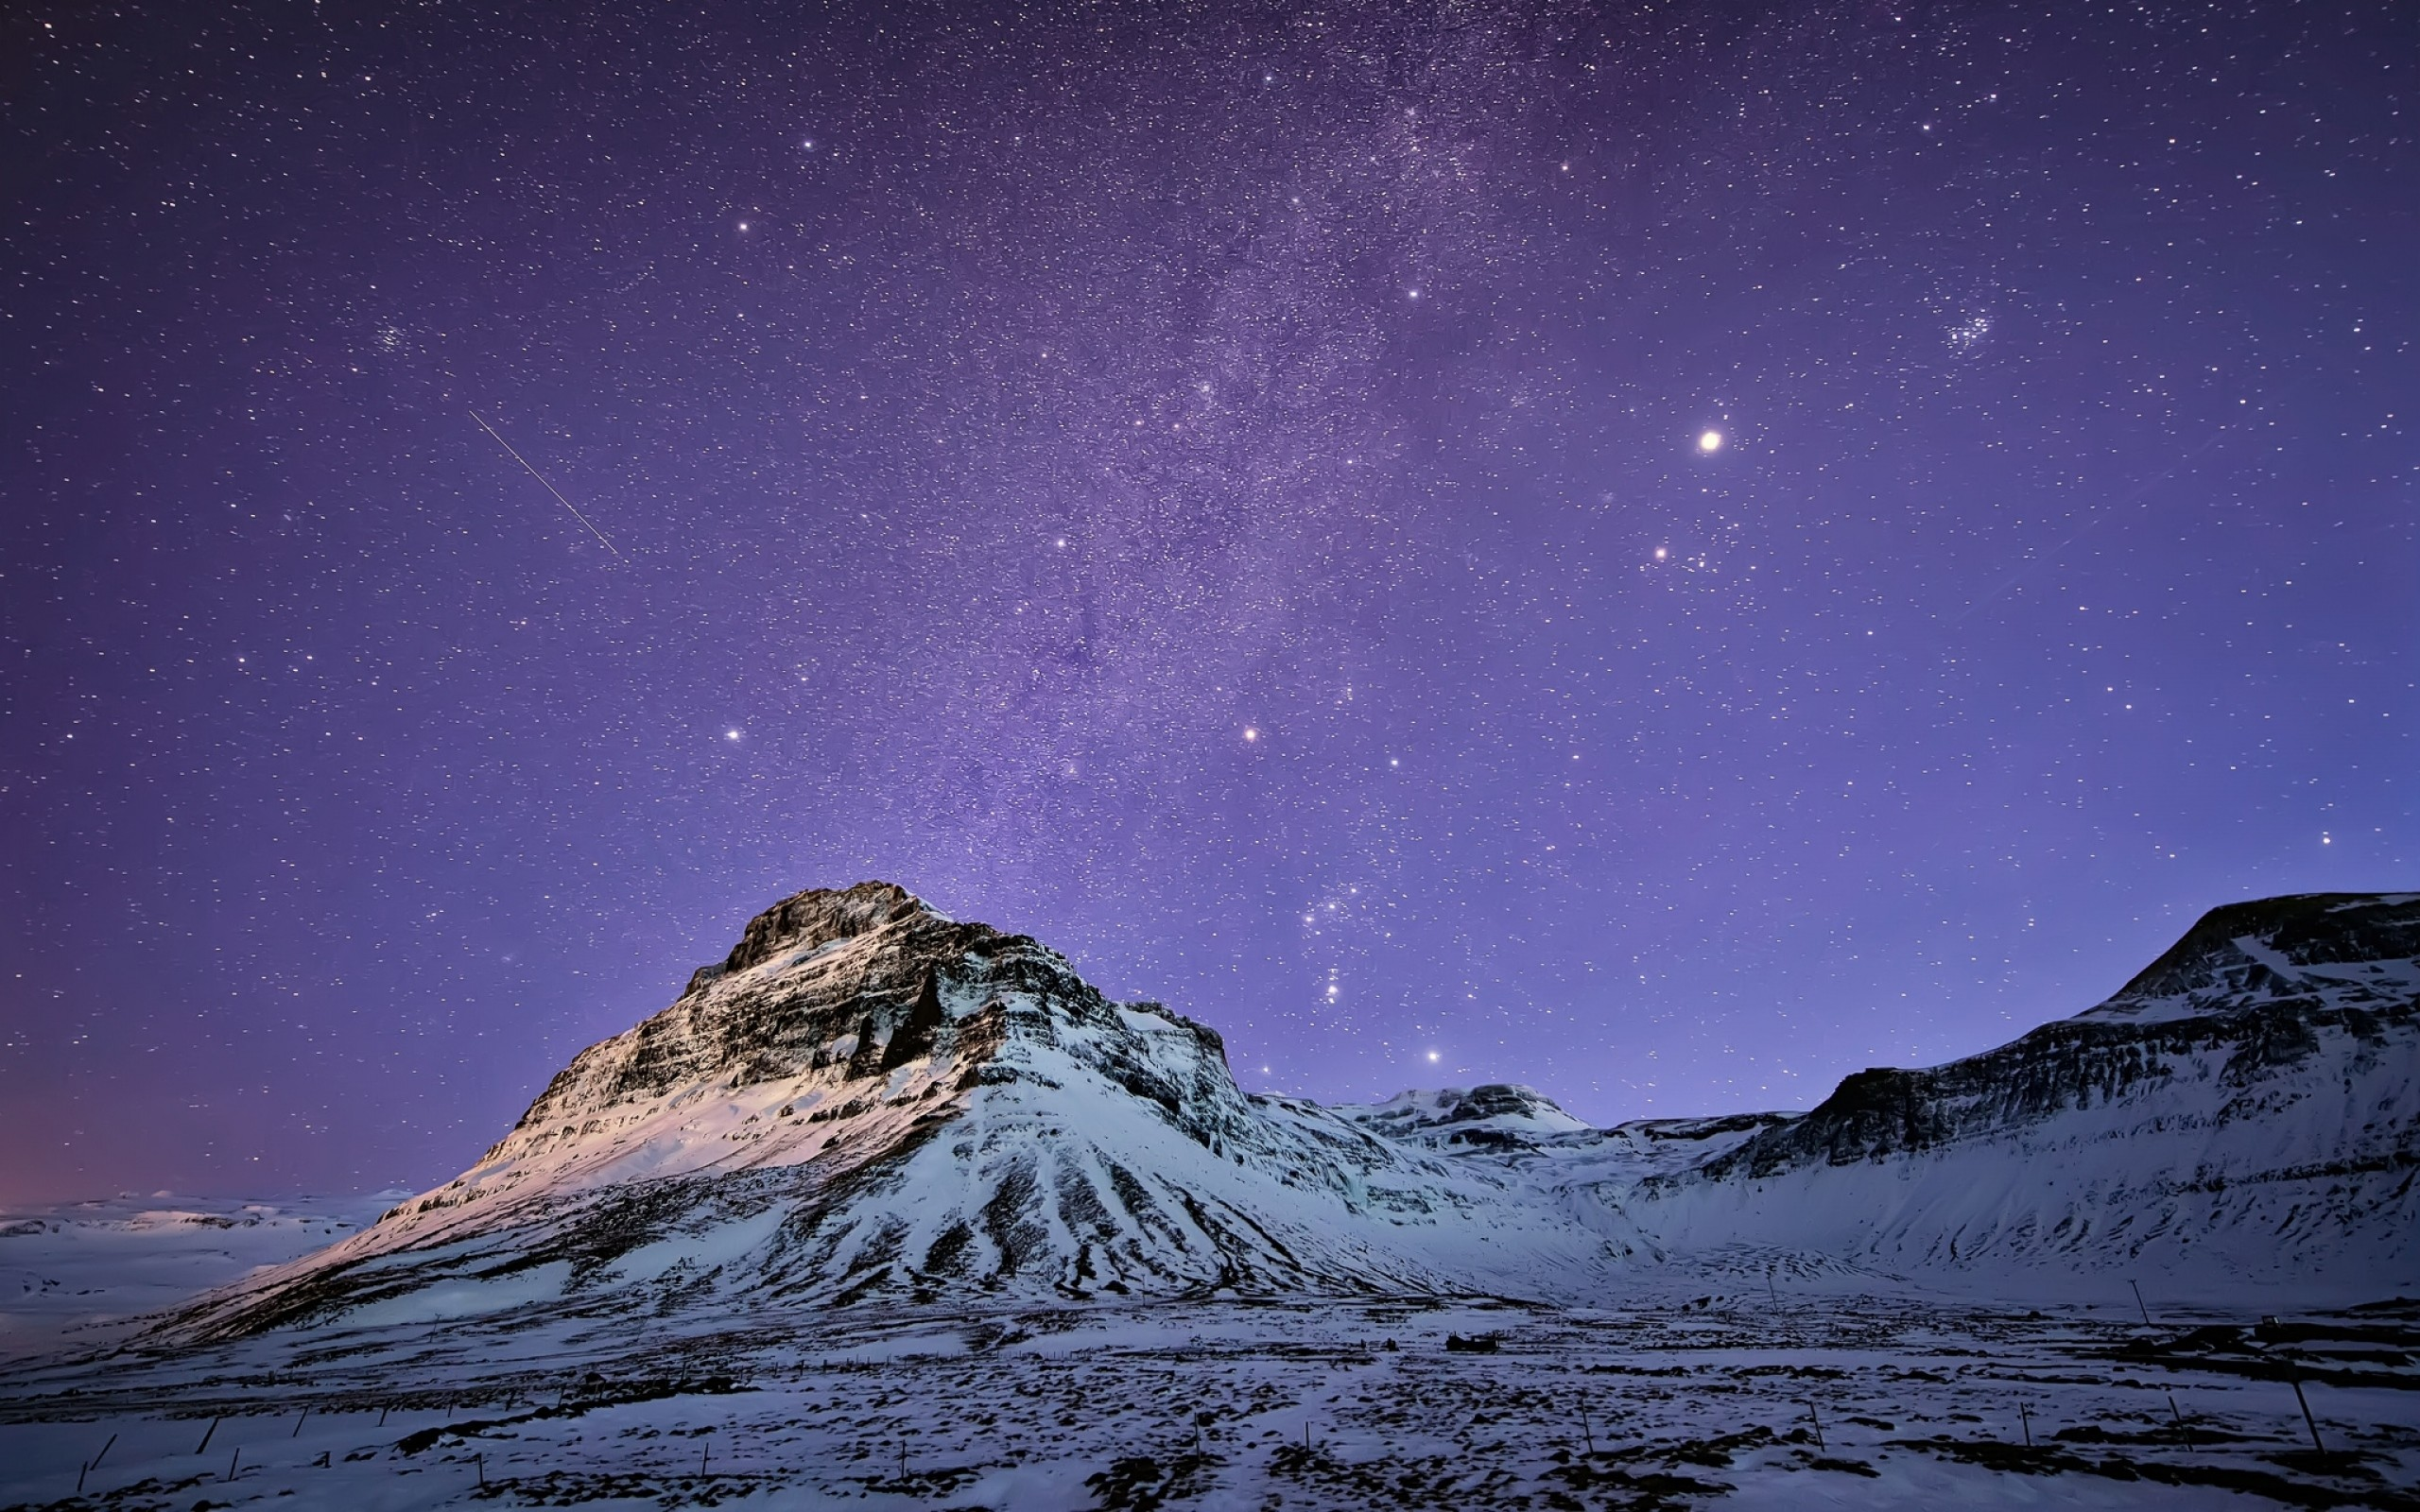 2560x1600 Preview wallpaper iceland, mountains, snow, night, lilac, sky, stars,